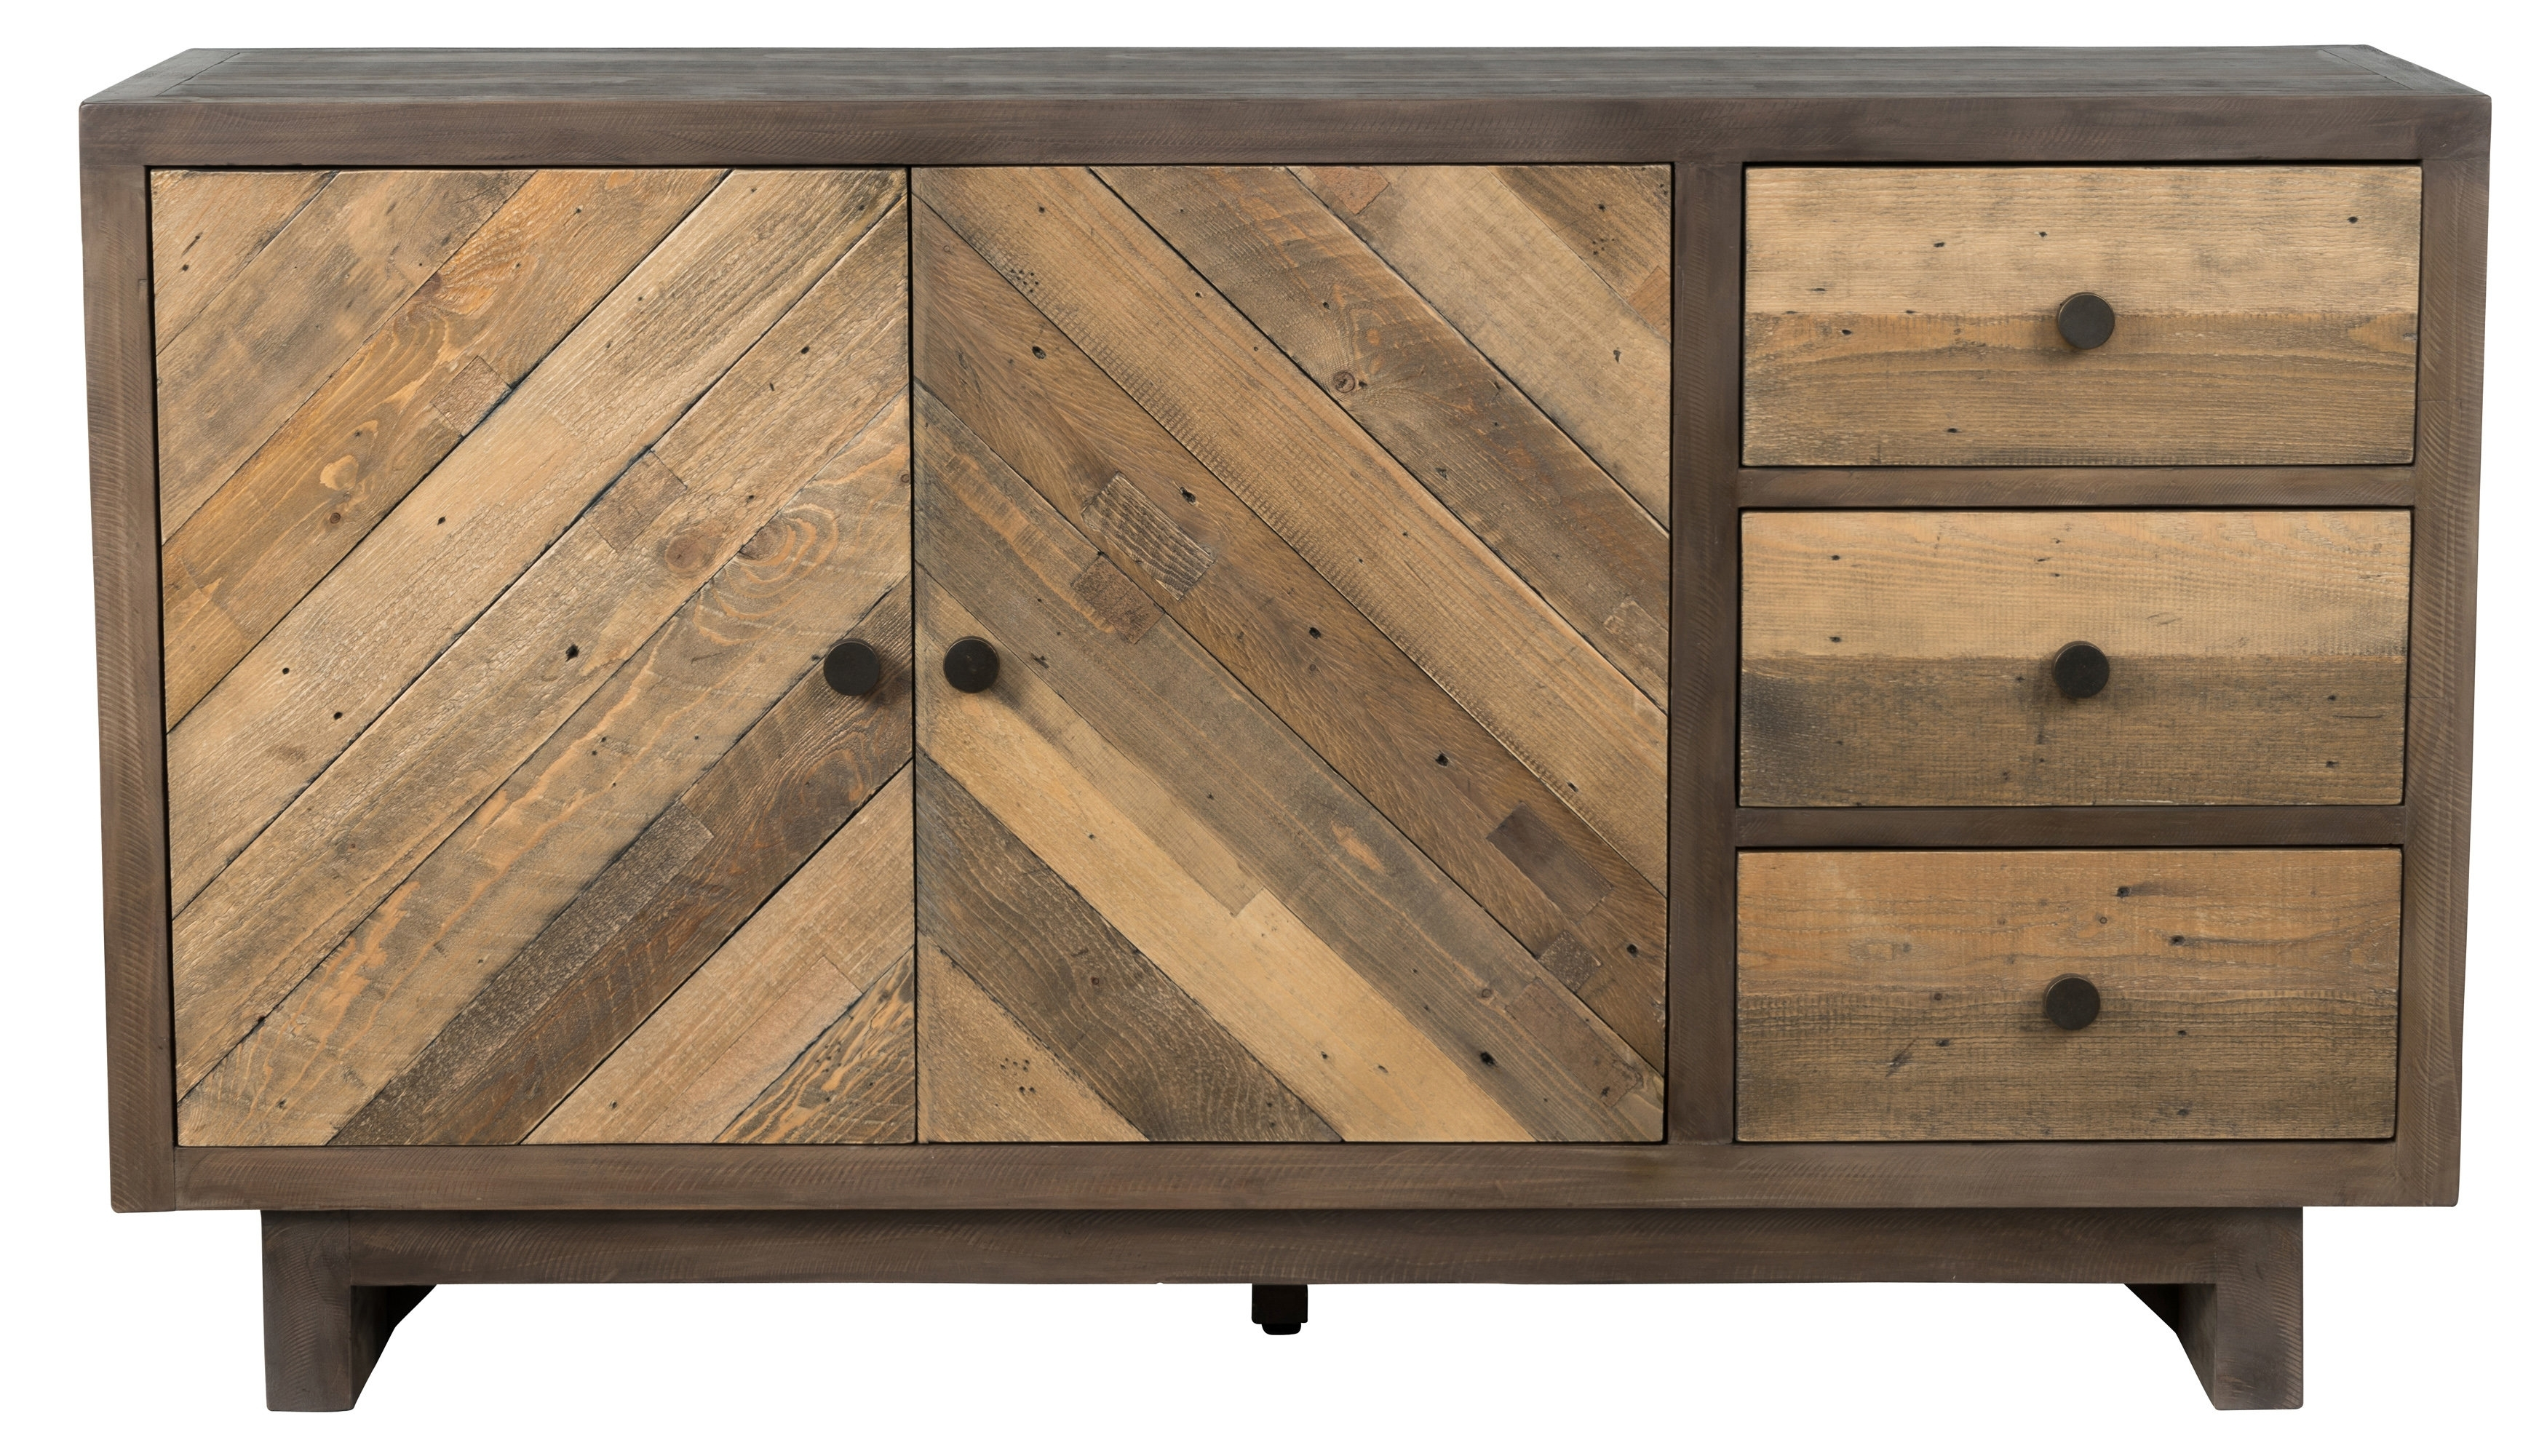 Union Rustic Brennan Reclaimed Pine 3 Drawer Sideboard & Reviews pertaining to Natural South Pine Sideboards (Image 28 of 30)